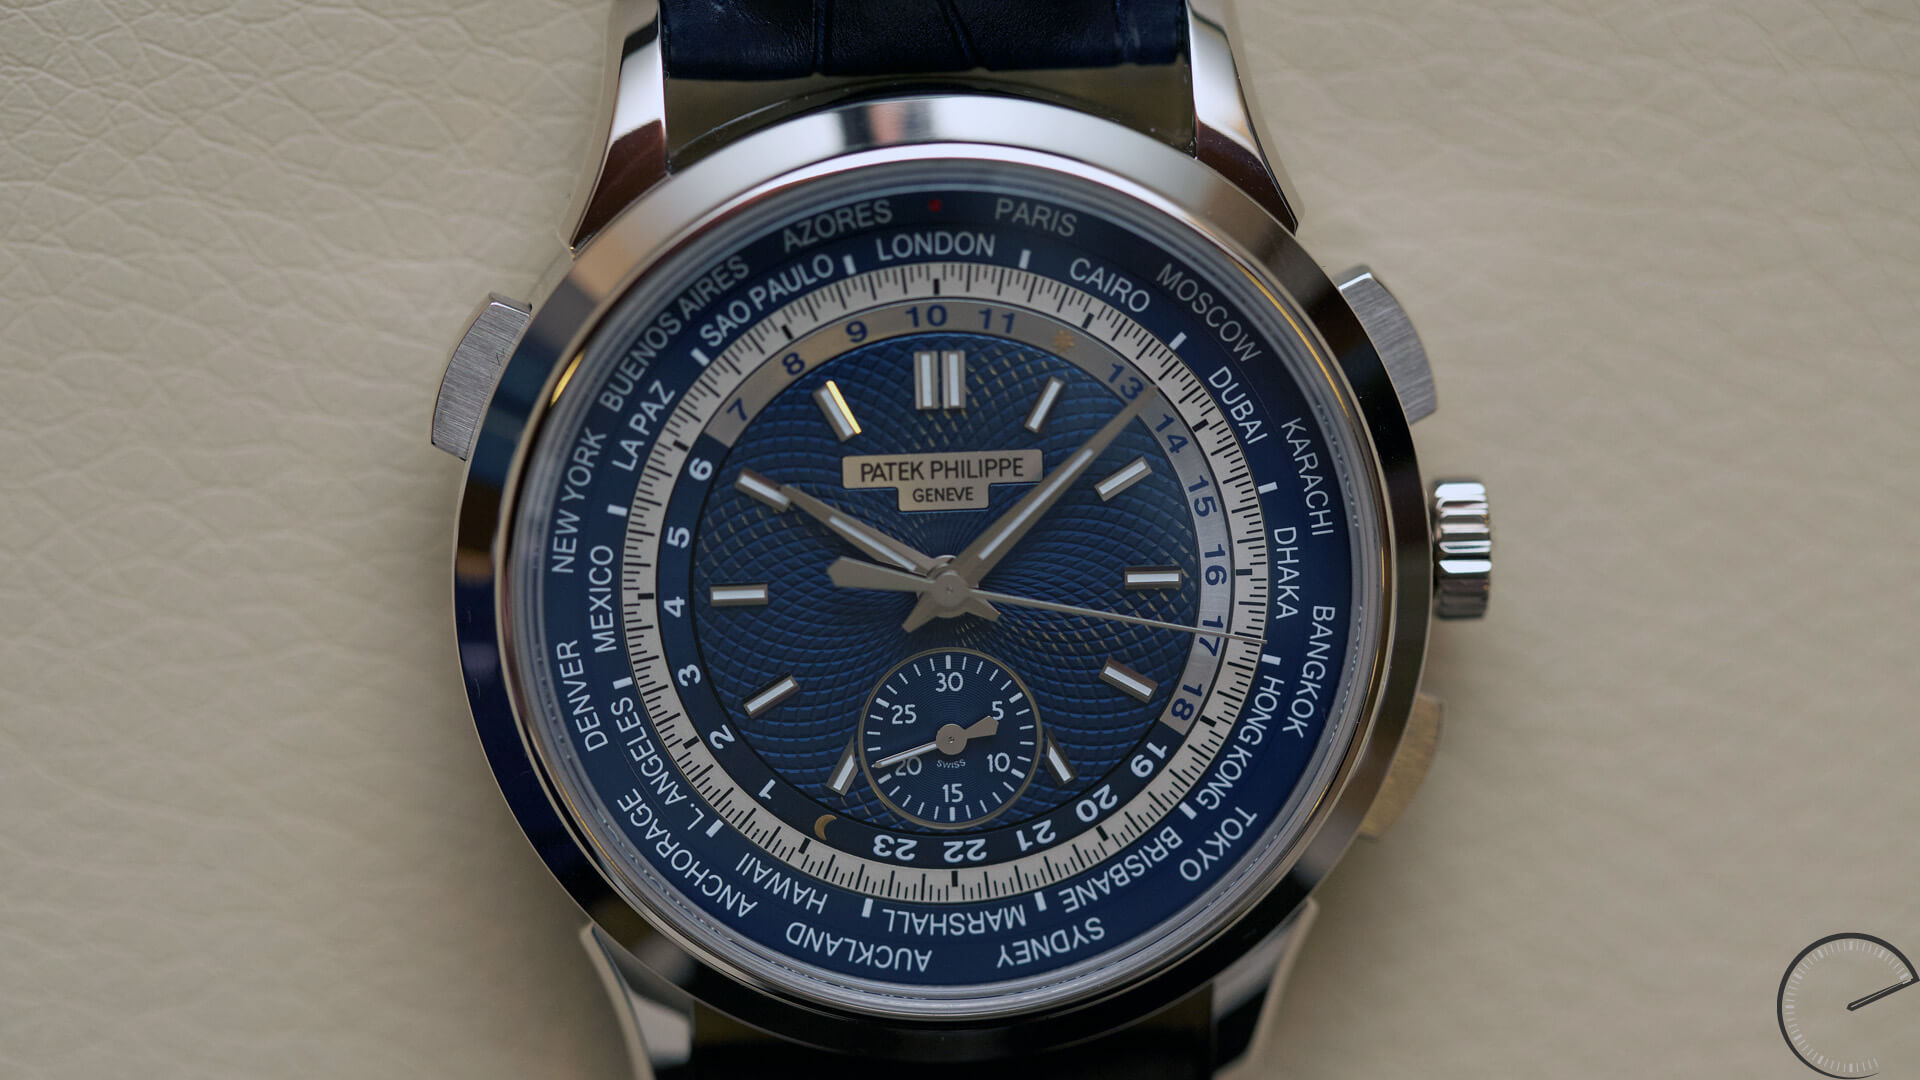 Patek_Philippe_World_Time_Chronograph_Ref. 5930_dial2 - ESCAPEMENT Magazine - watch reviews by Angus Davies